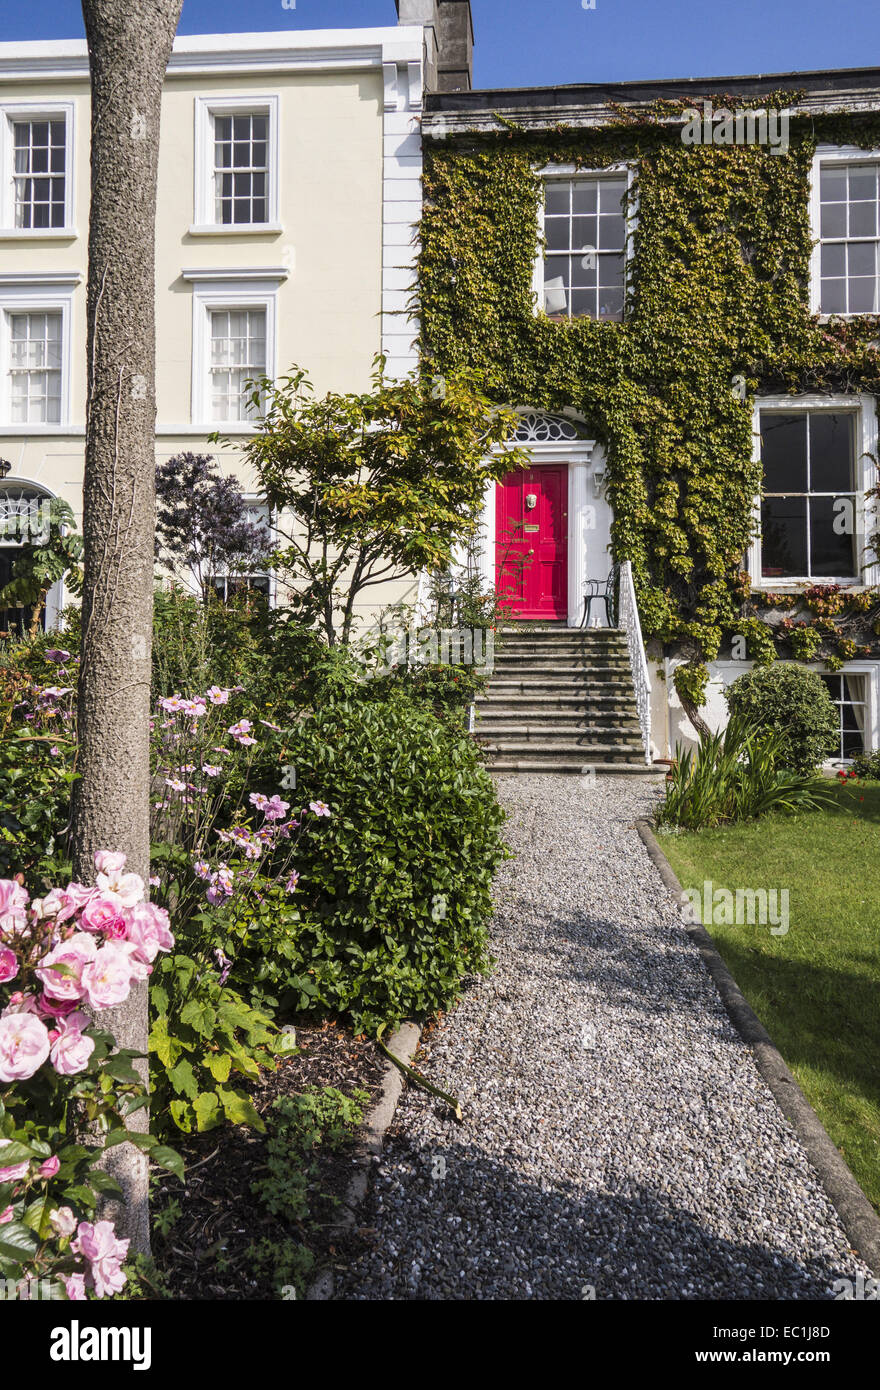 Georgian doorway and houses by the sea, Sandycove, Co. Dublin, Ireland, with rose garden - Stock Image